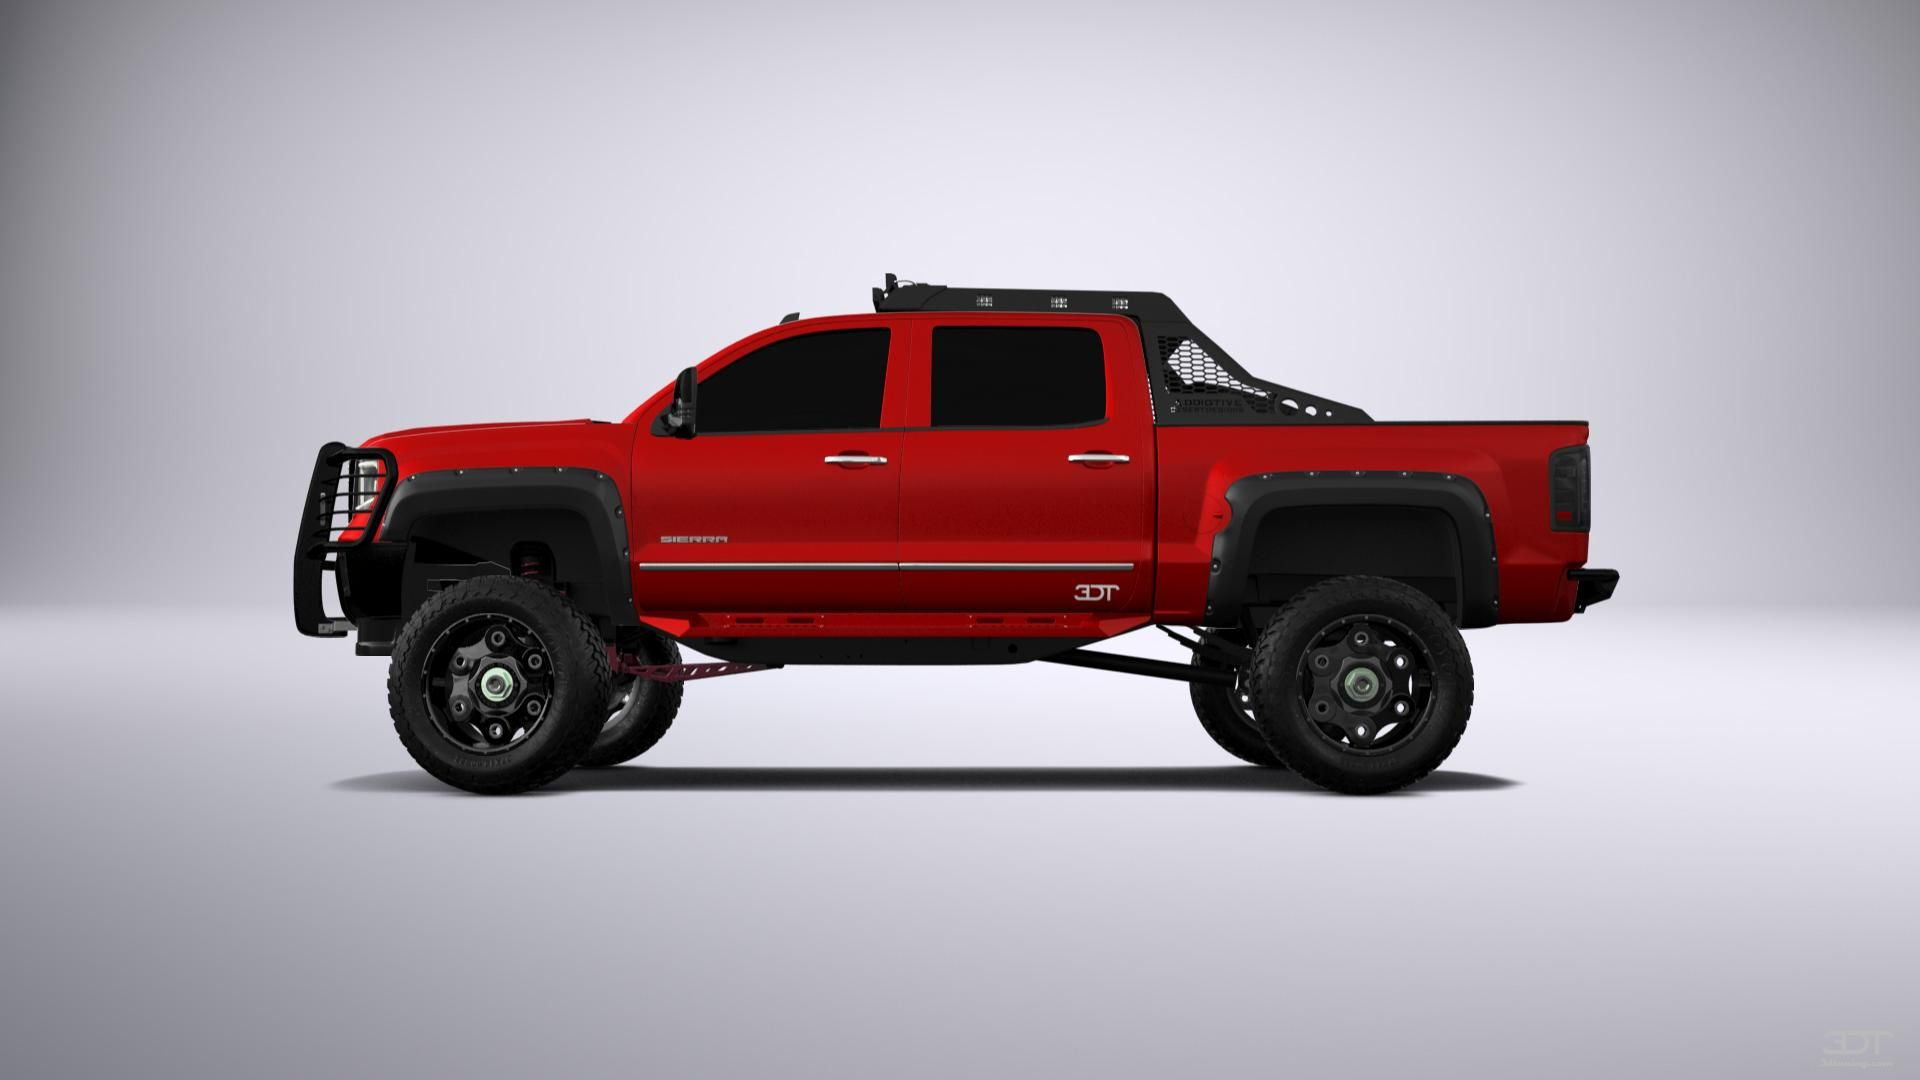 Checkout My Tuning Gmc Sierra 2014 At 3dtuning 3dtuning Tuning